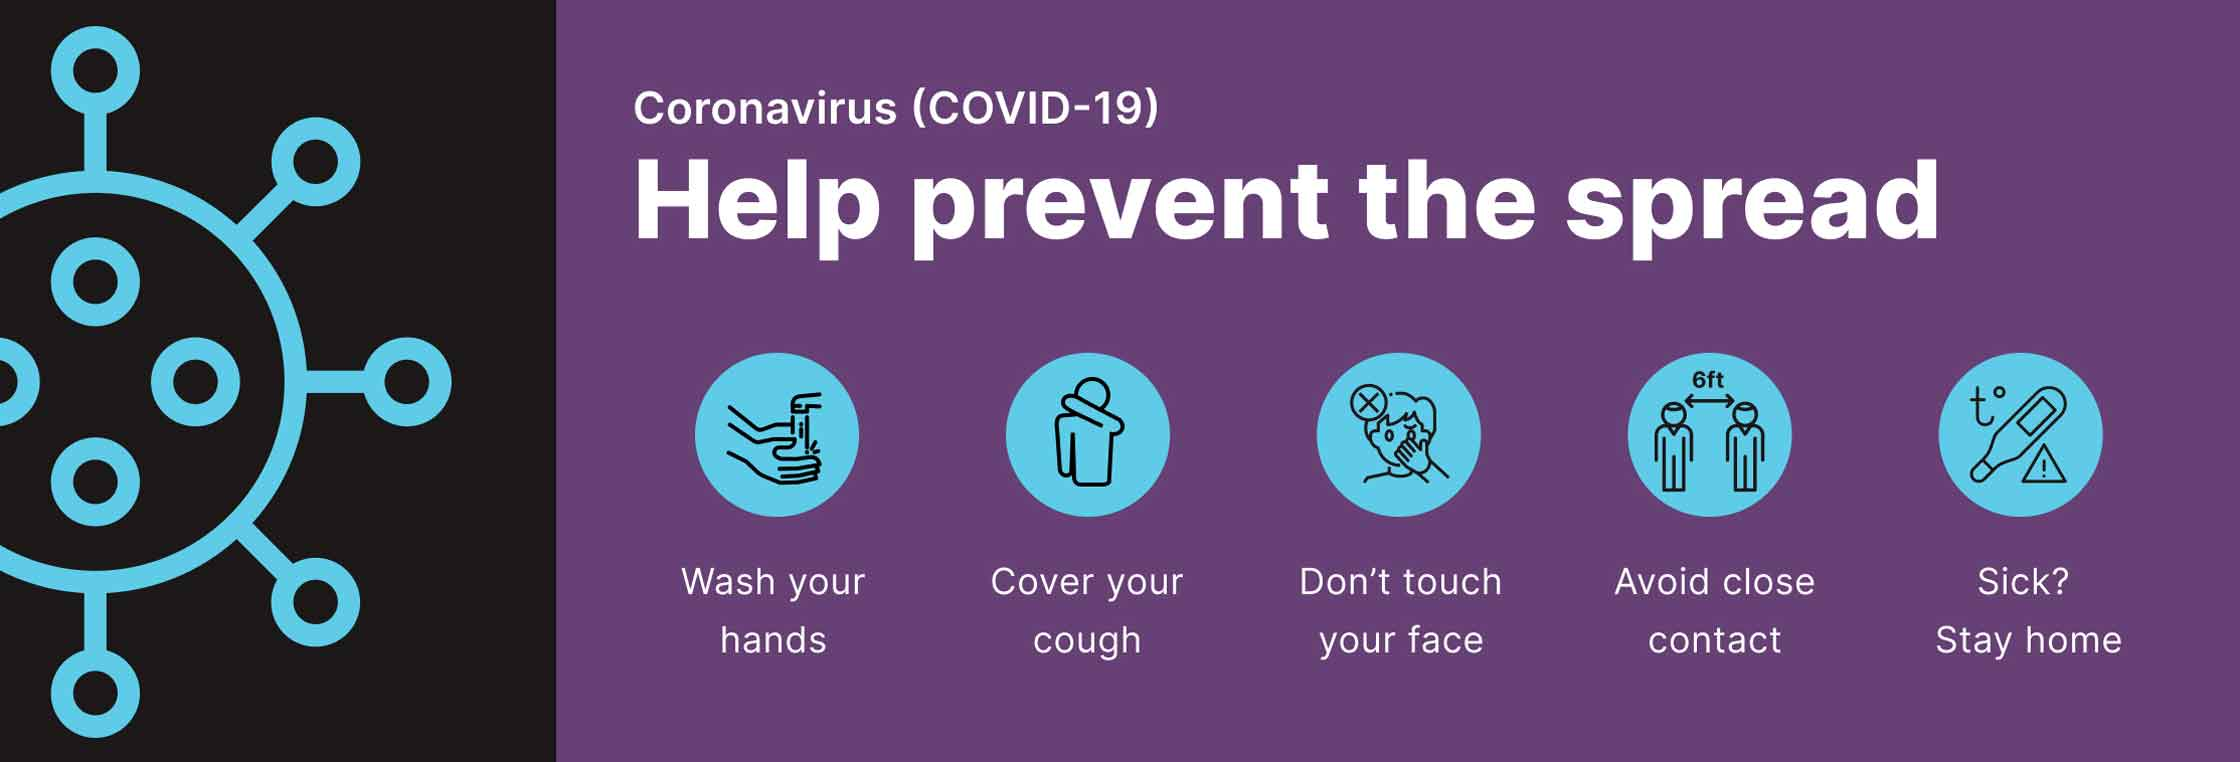 Coronavirus - Help prevent the spread